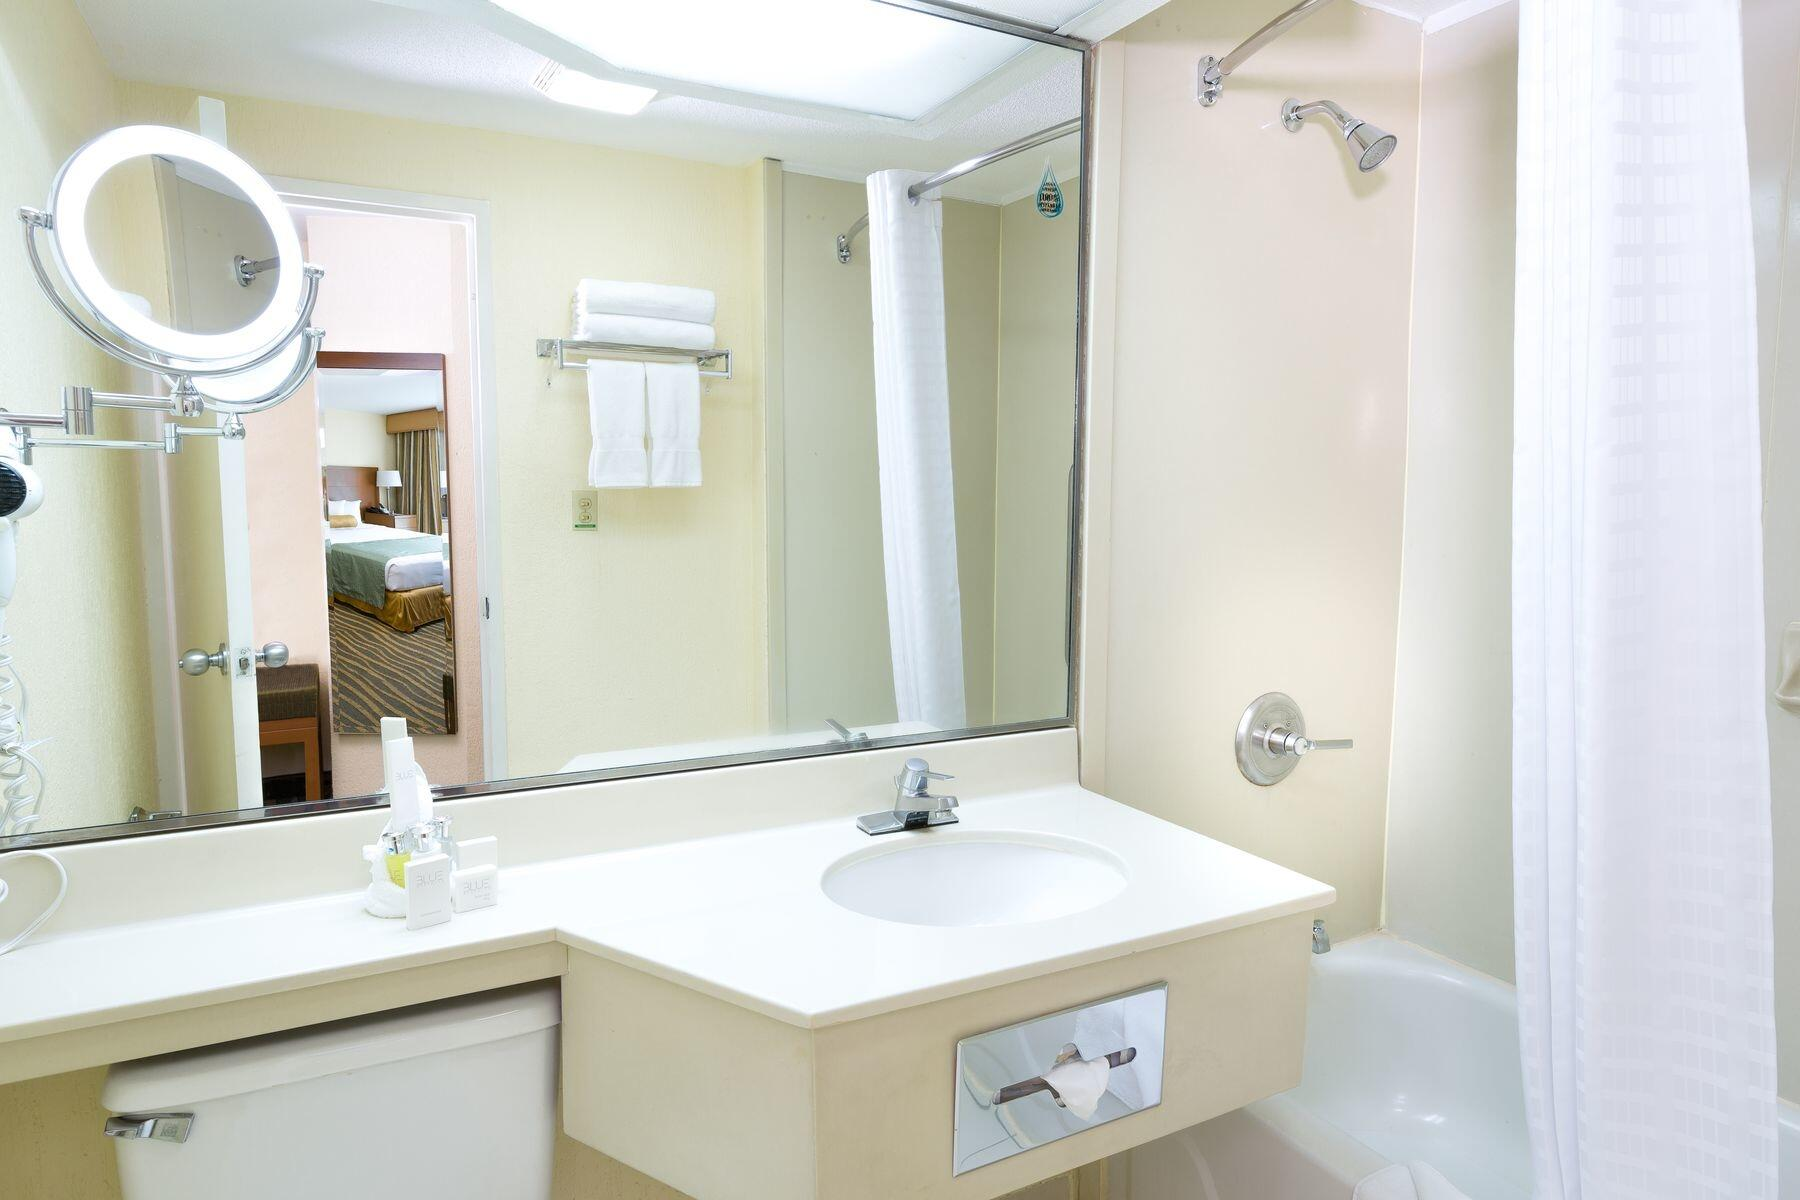 Bathroom shower and vanity with wall mounted lighted mirror